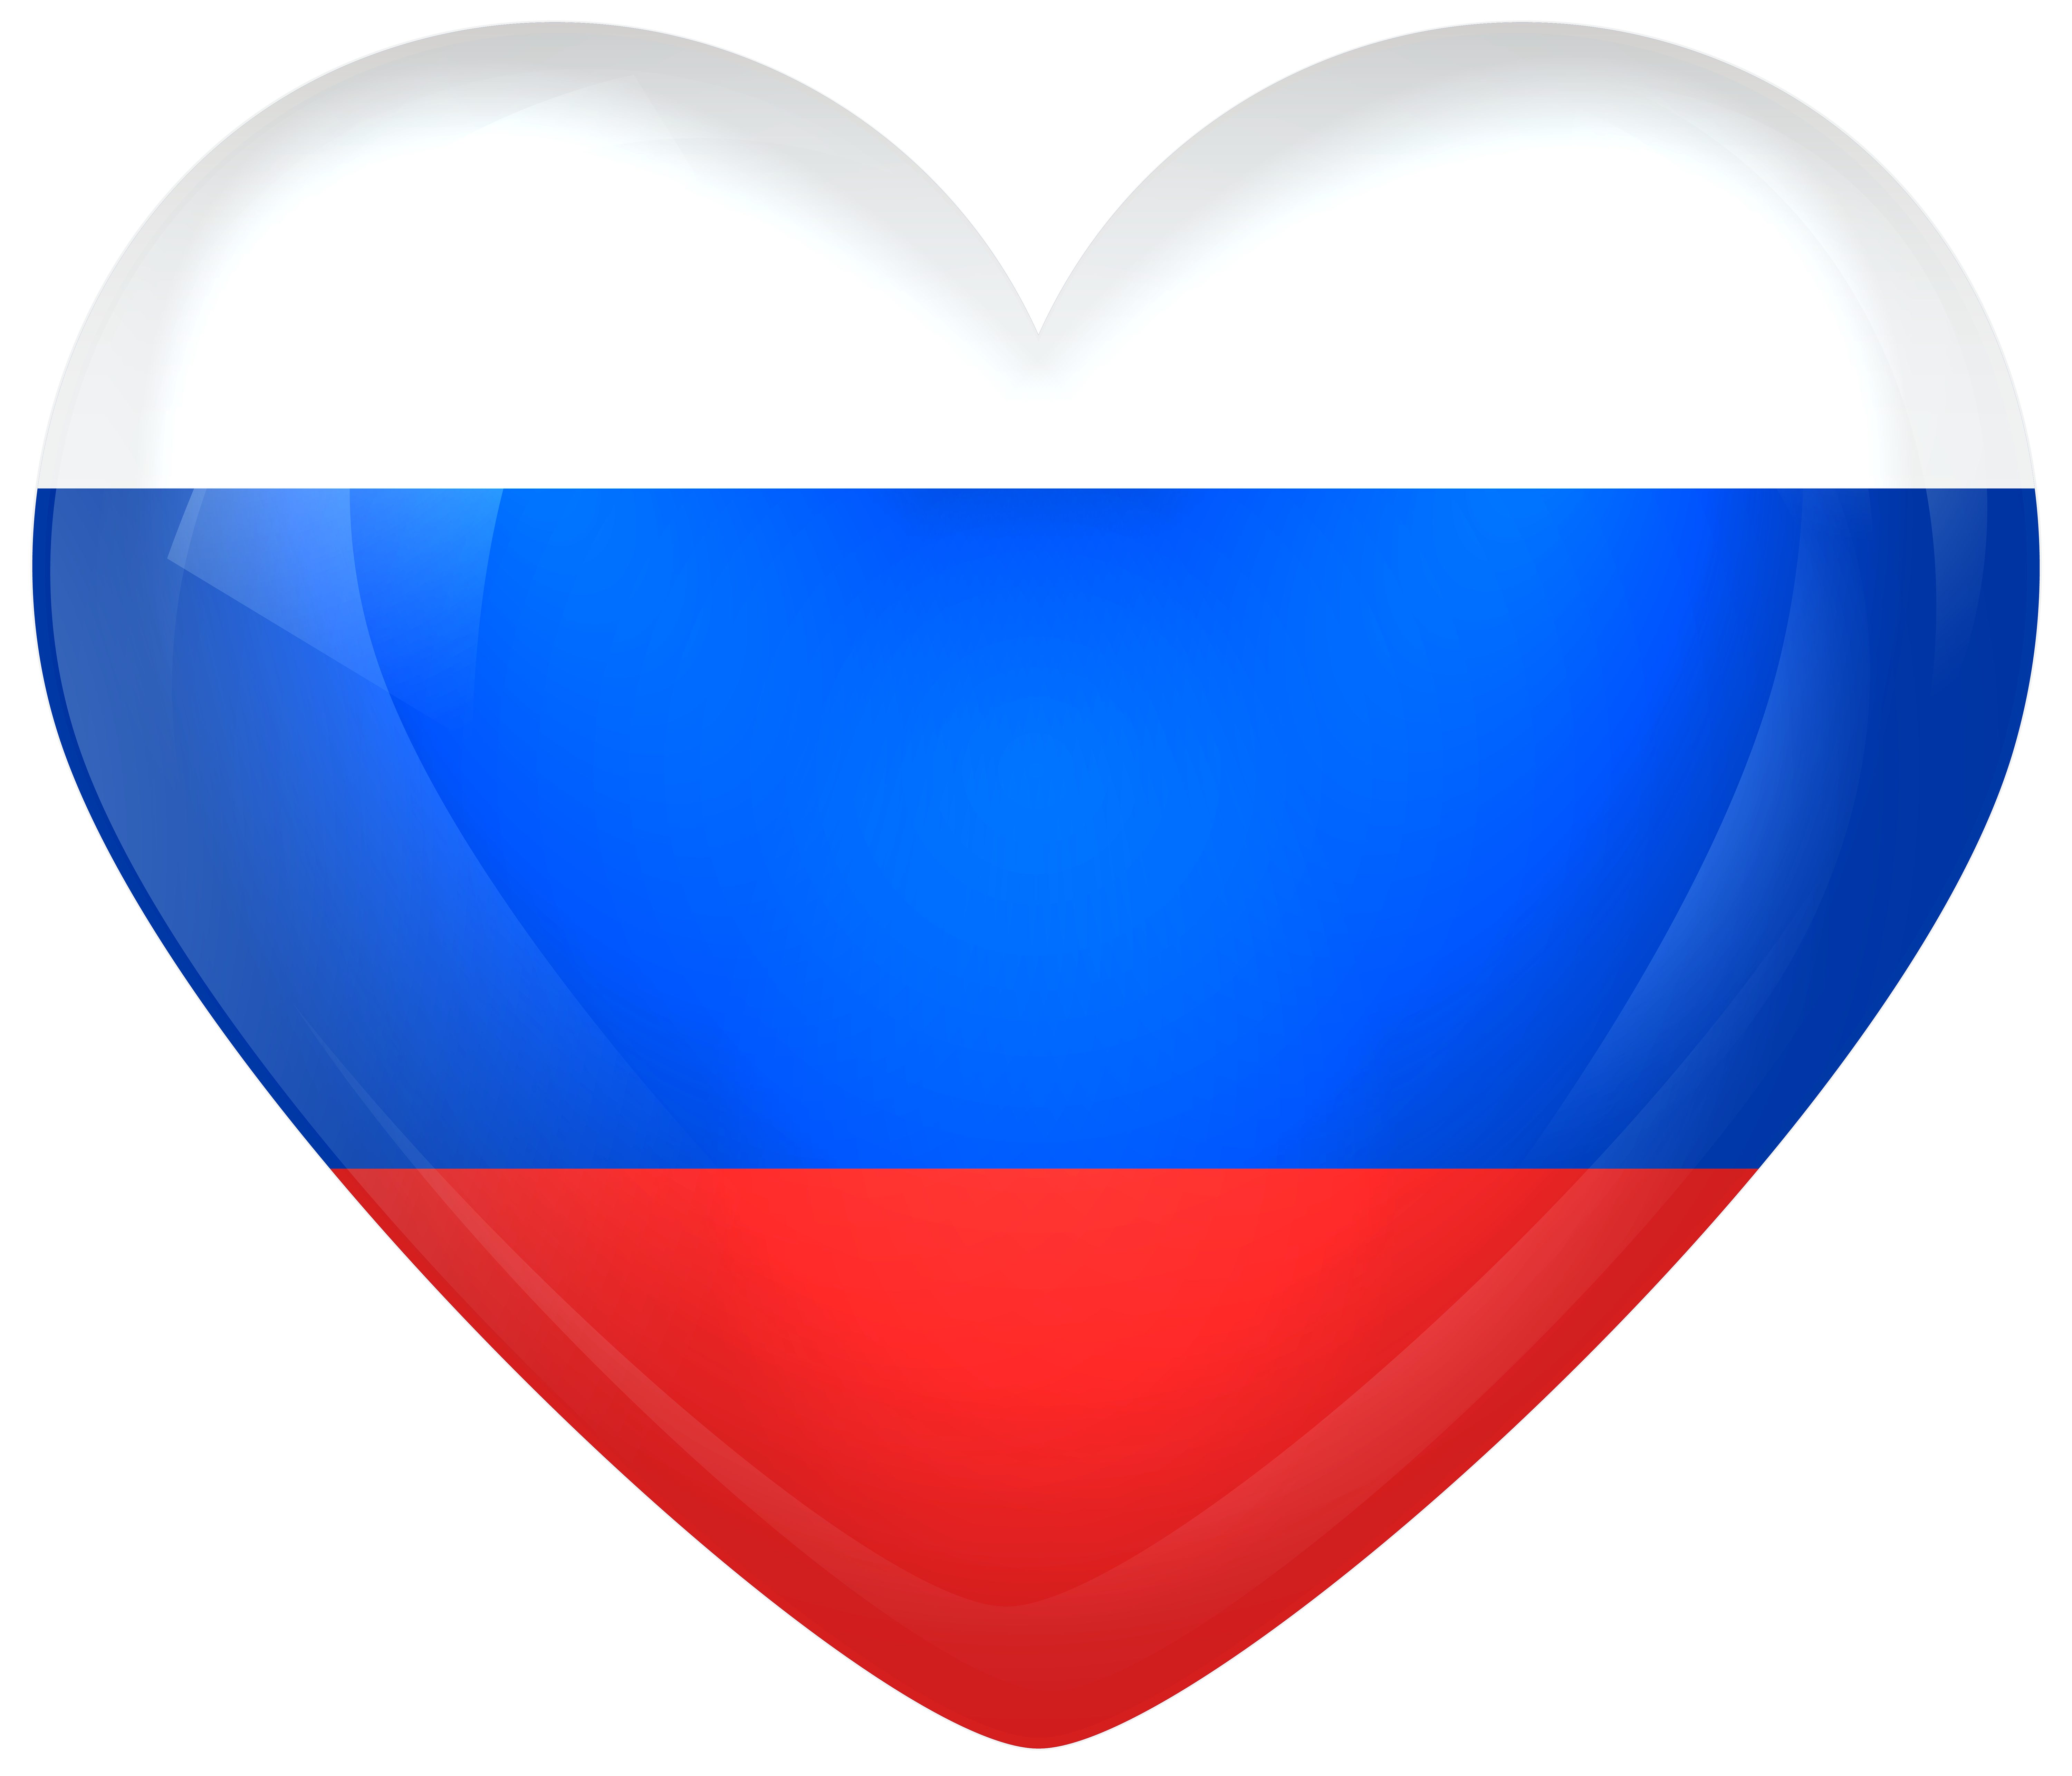 Transparent russian png. Russia large heart flag